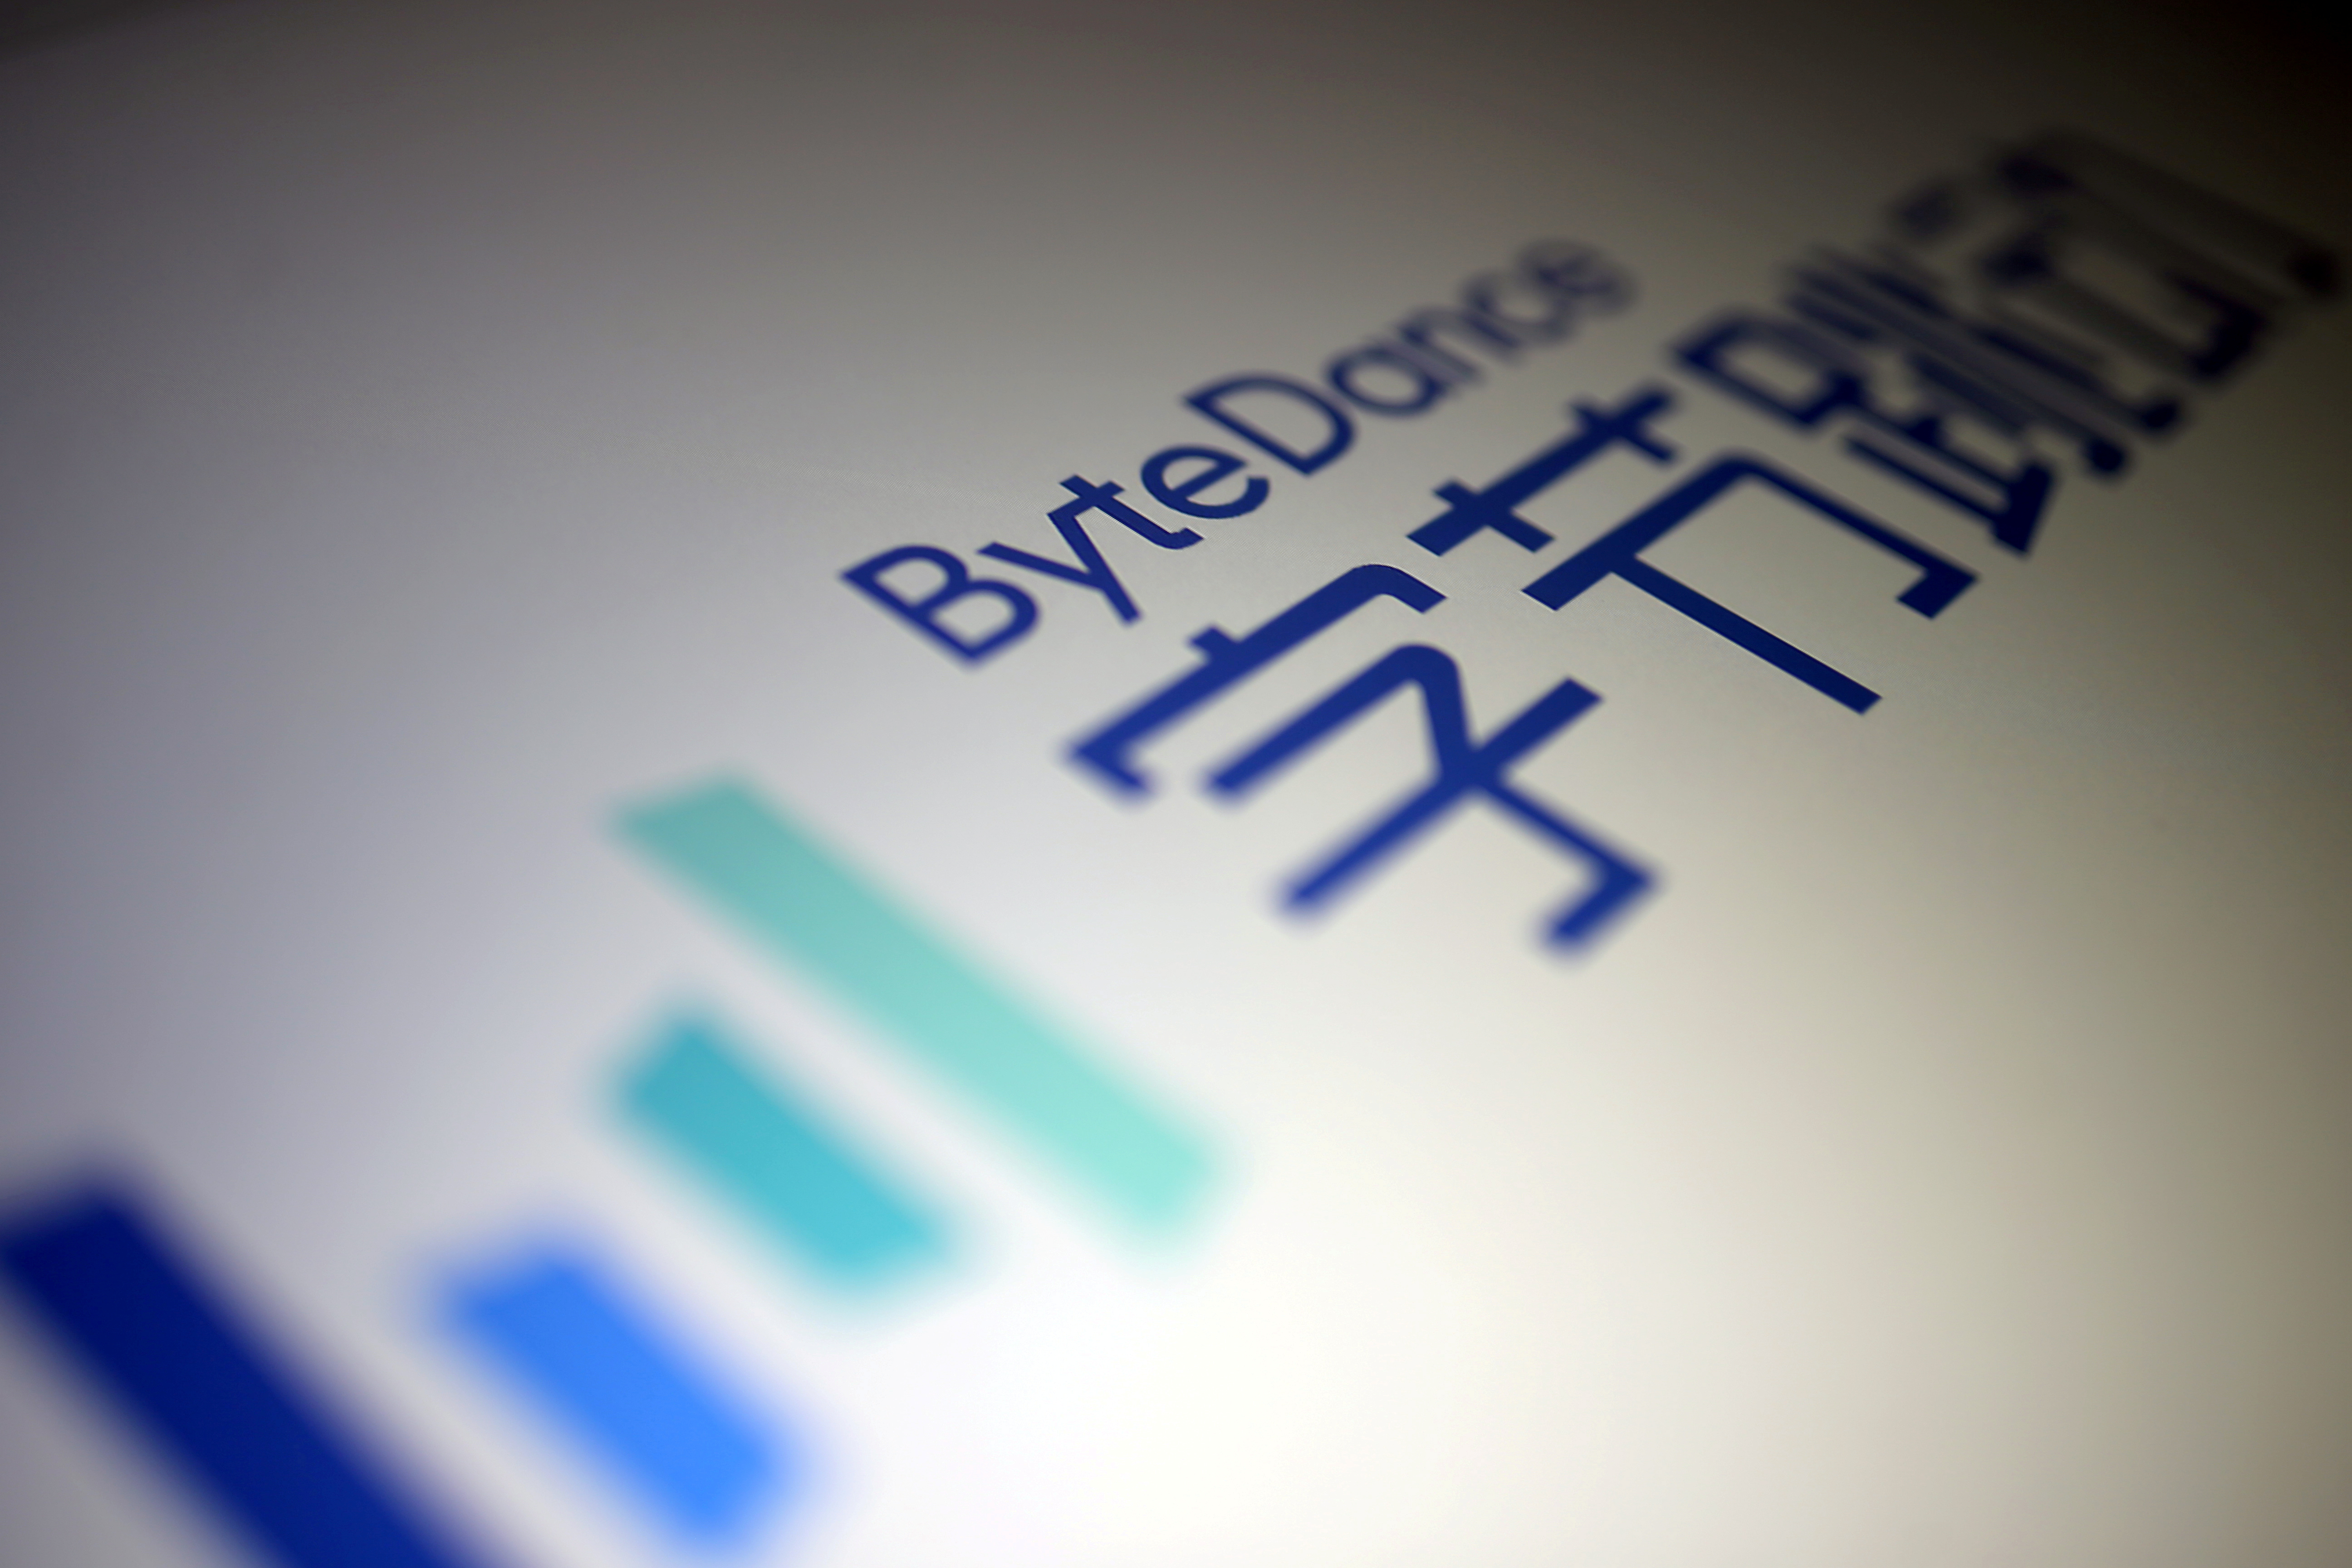 The ByteDance logo is seen in this illustration taken, November 27, 2019. REUTERS/Dado Ruvic/Illustration/File Photo